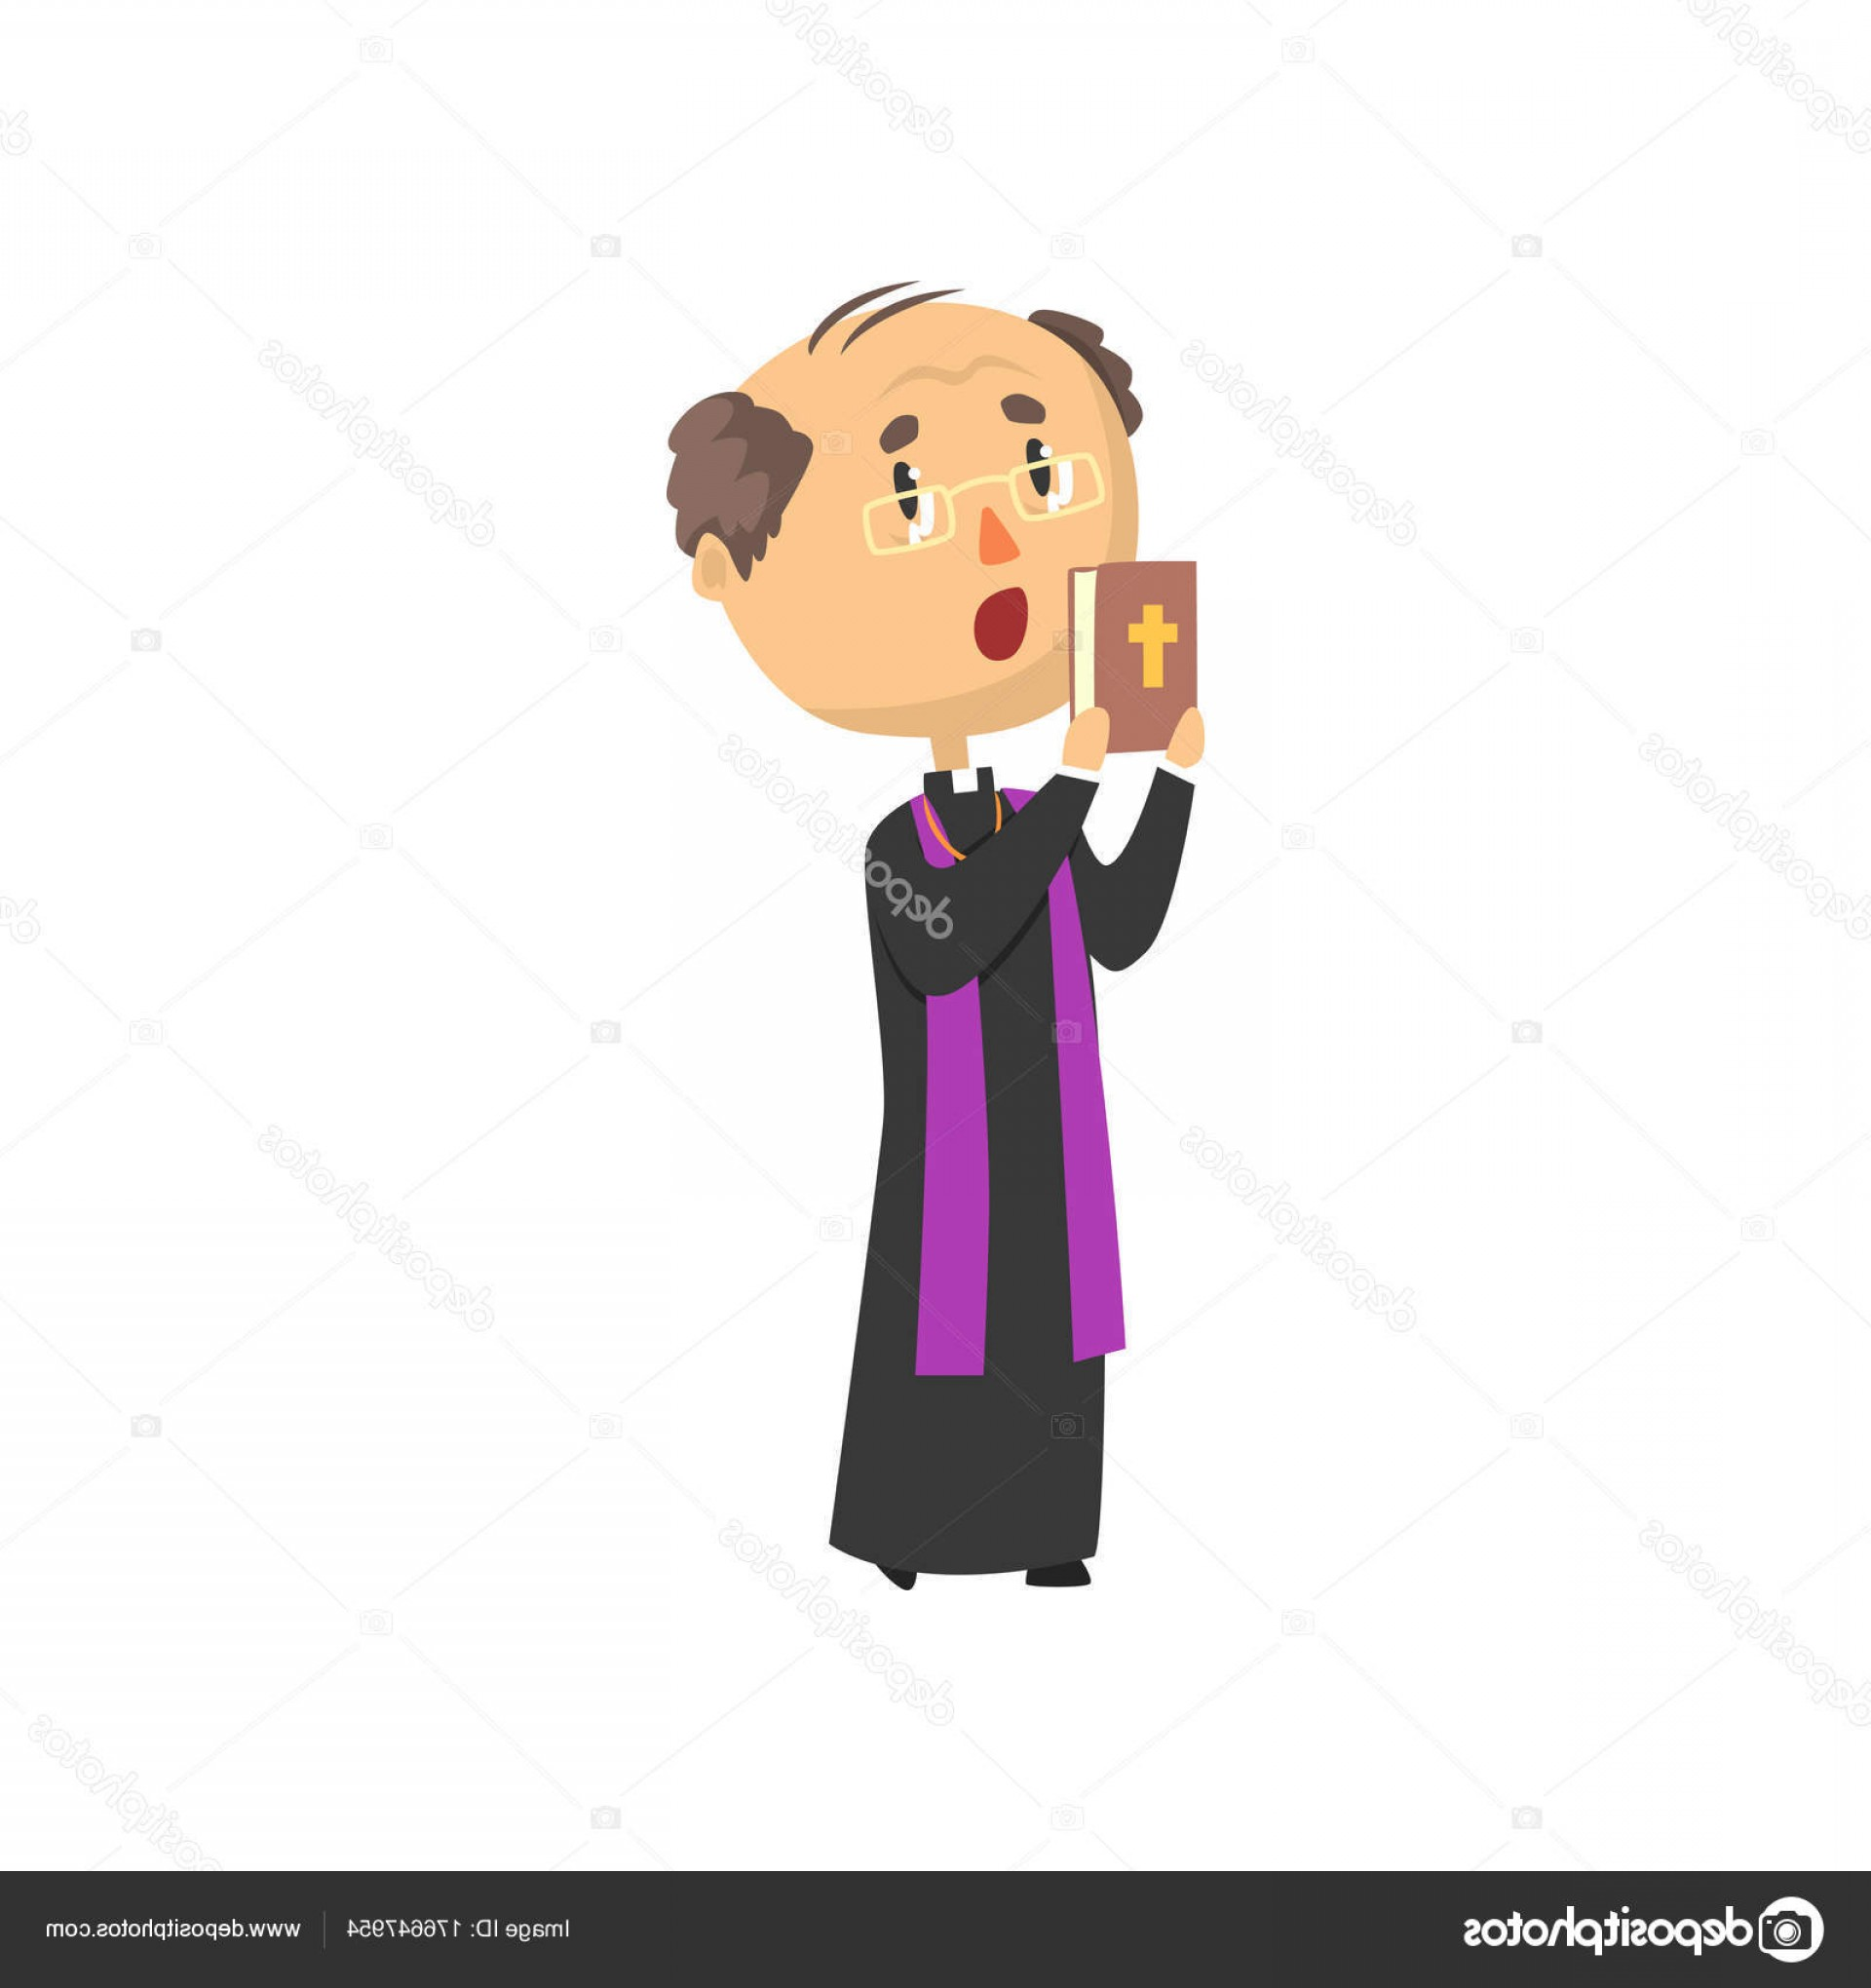 Bible Class Background Vector: Stock Illustration Priest Character People With Bible